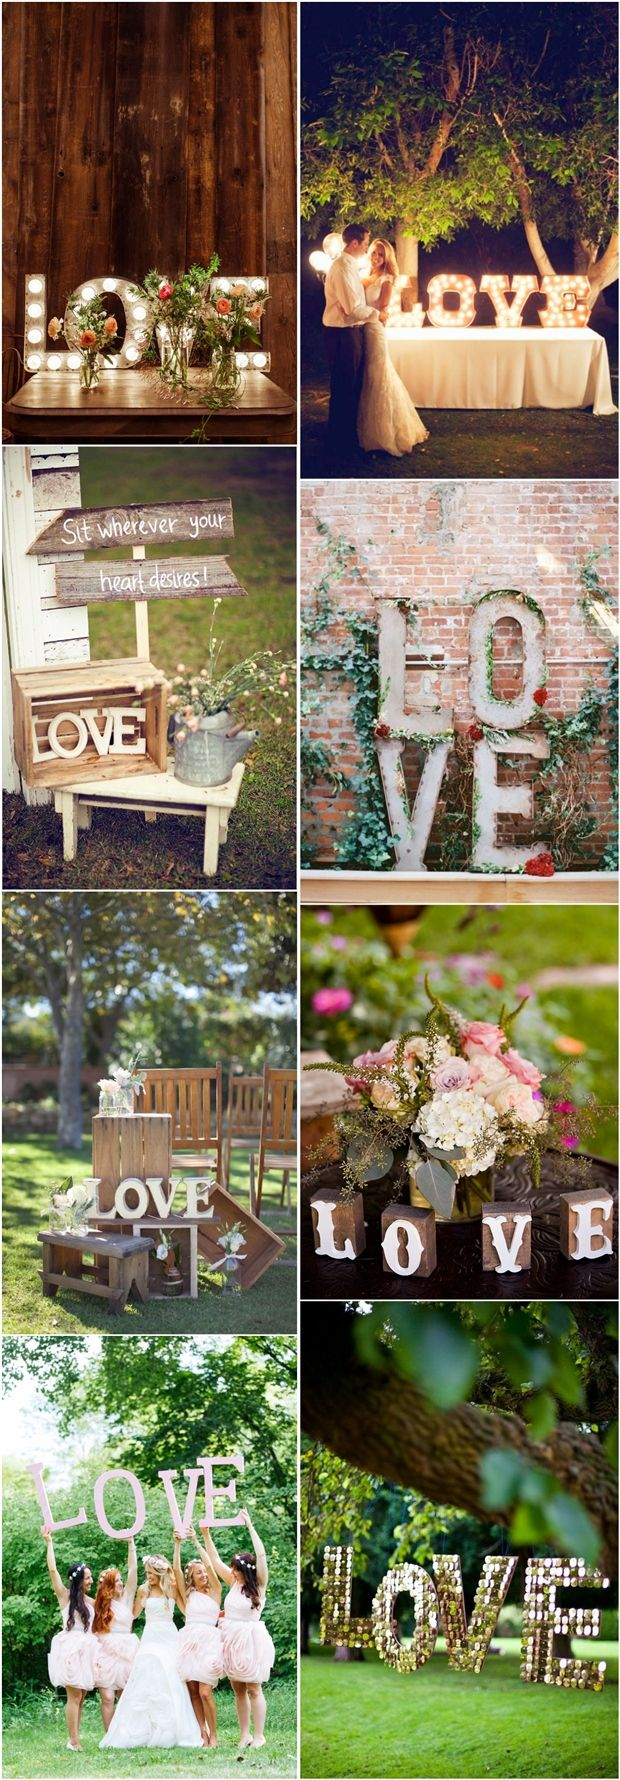 Rustic Vintage Wedding Decor Etsy Finds 18 Rustic Country Wood Wedding Guest Books